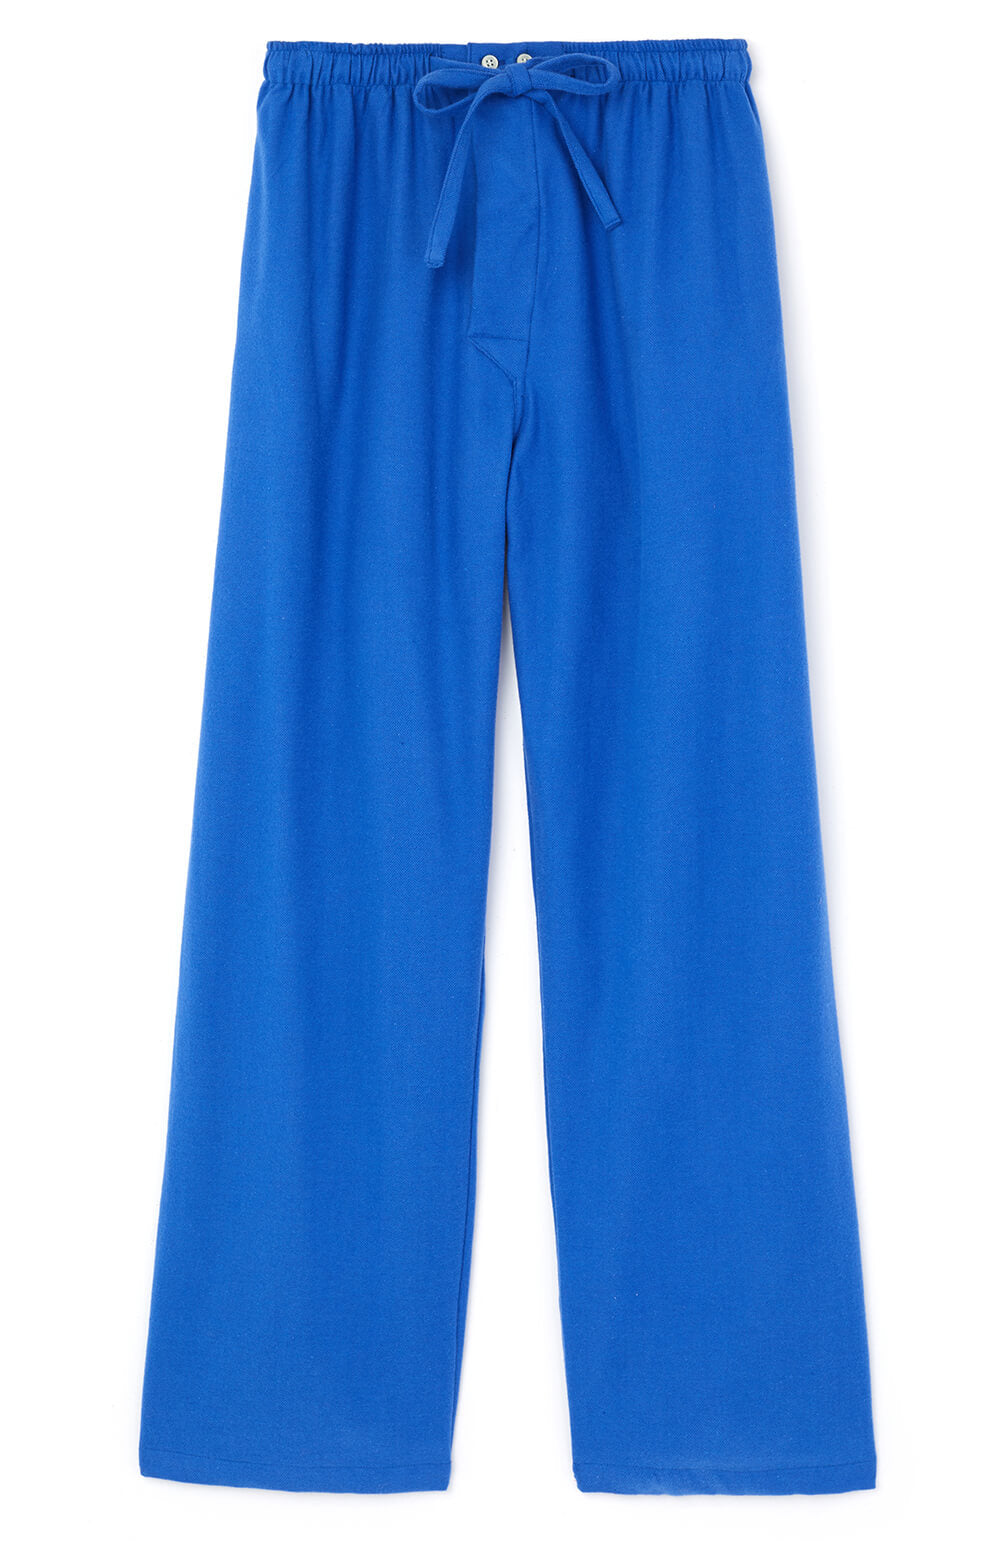 Brushed Cotton Bright Blue Pyjama Trousers | Bonsoir of London